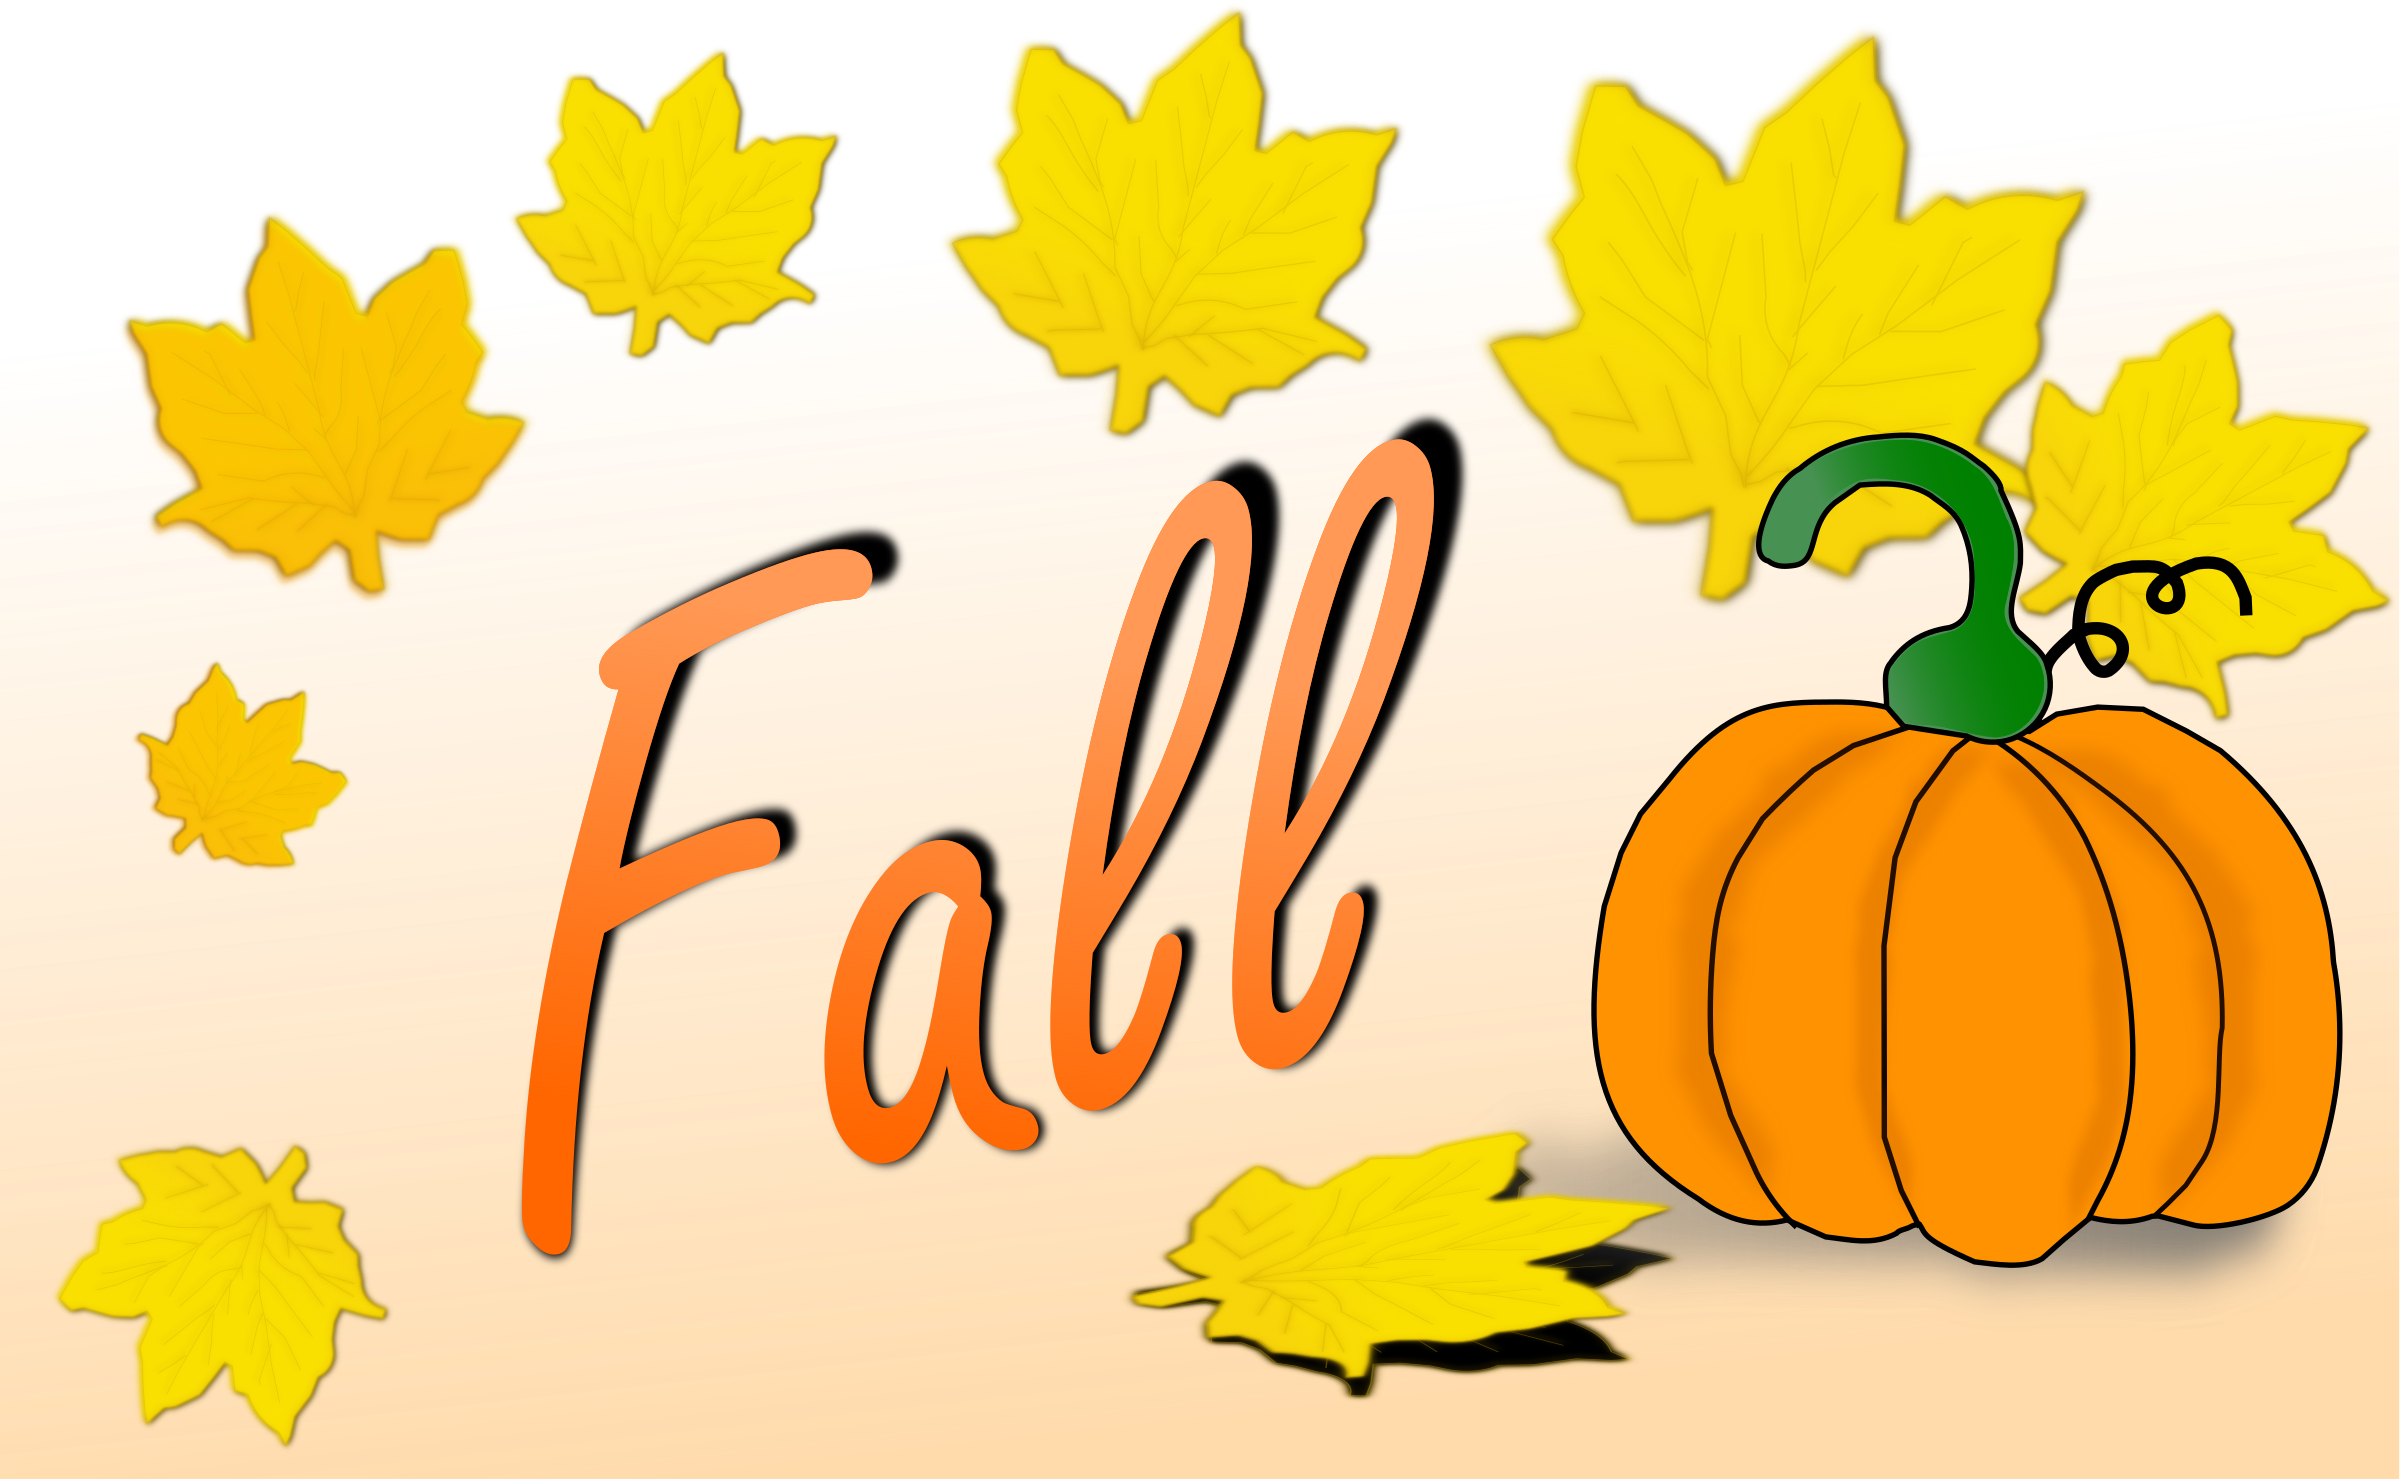 fall clipart at getdrawings com free for personal use fall clipart rh getdrawings com clip art falling down clip art fall leaves border